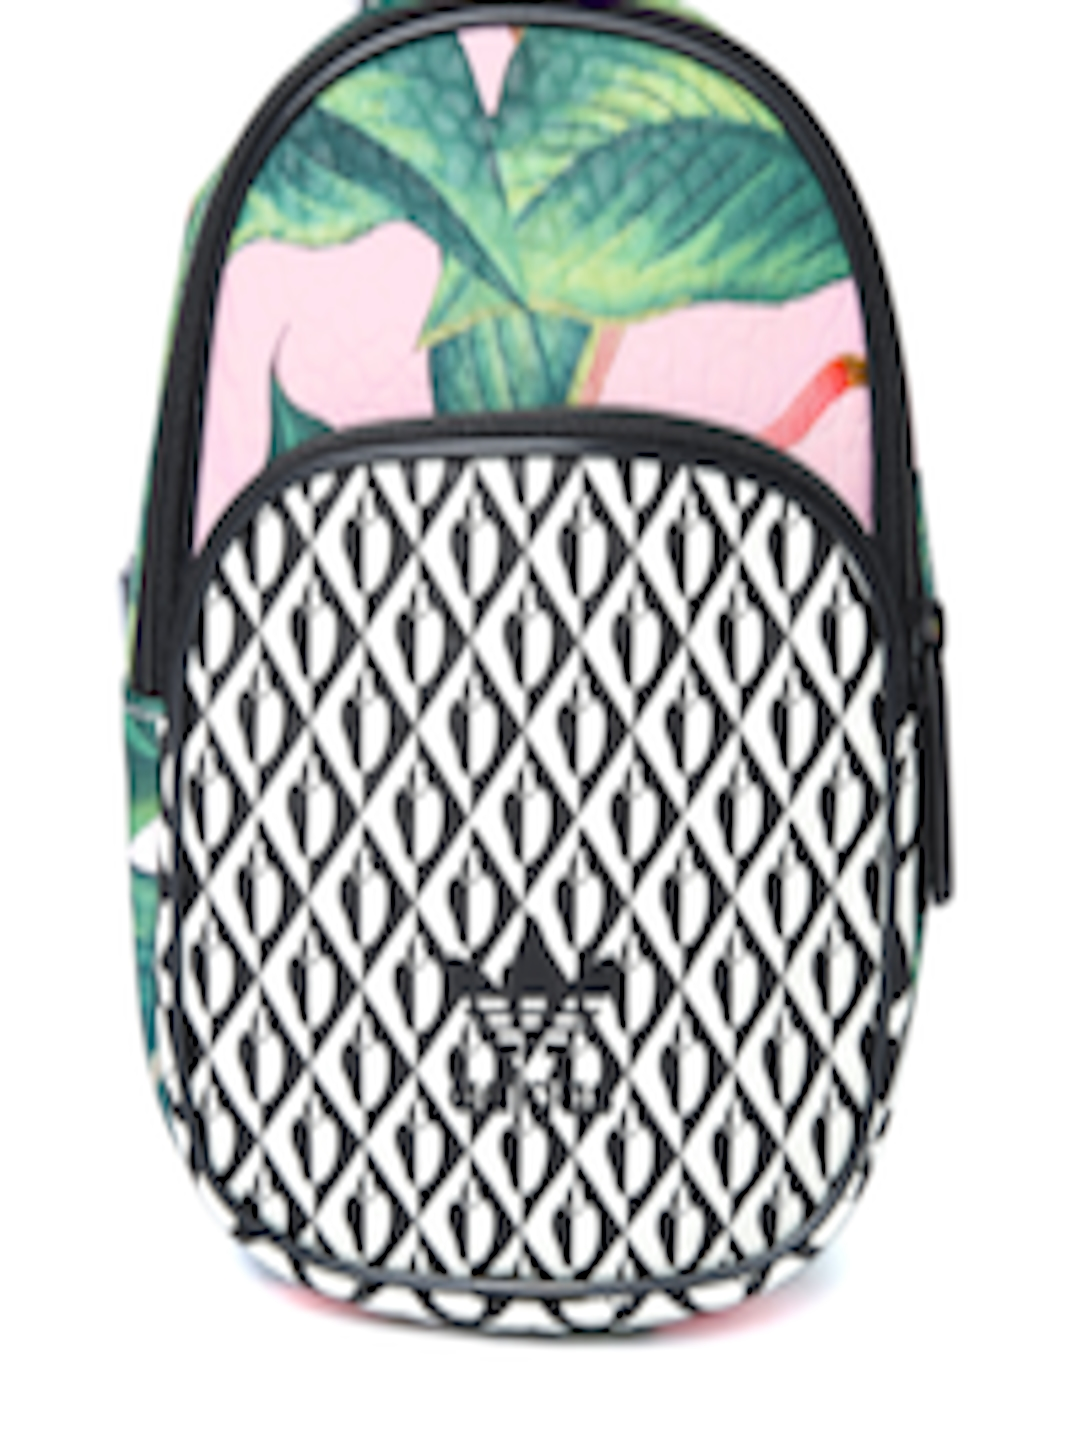 Buy ADIDAS Originals Women Green   Black Mini Printed Backpack - Backpacks  for Women 7587174  256f55288fcad